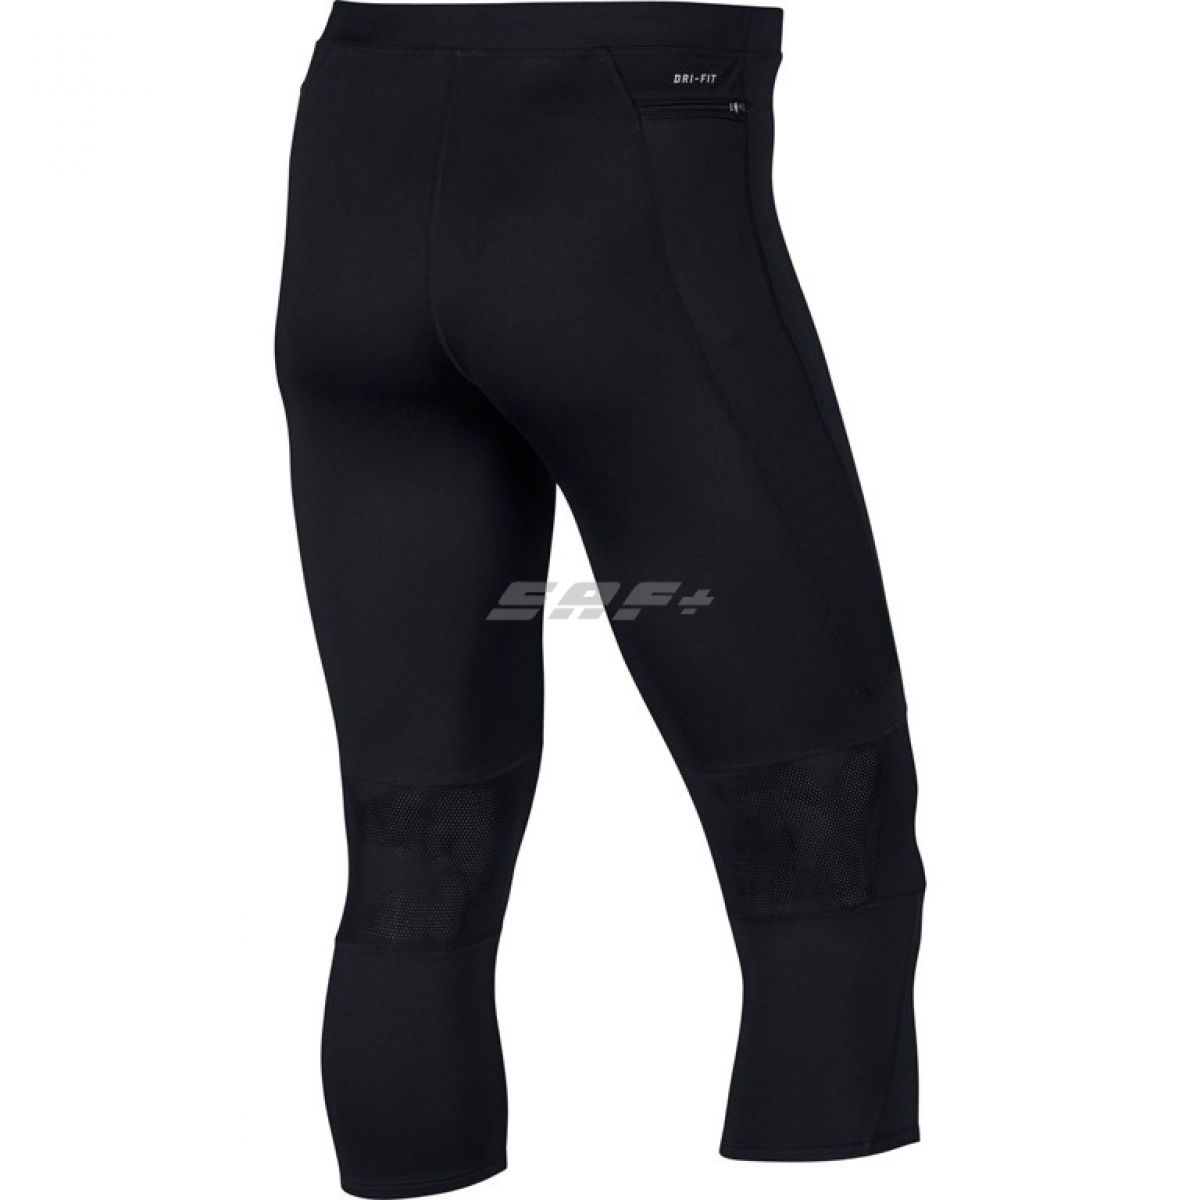 ТАЙТСЫ NIKE Л/АТЛ. DF ESSENTIAL 3/4 TIGHT SR